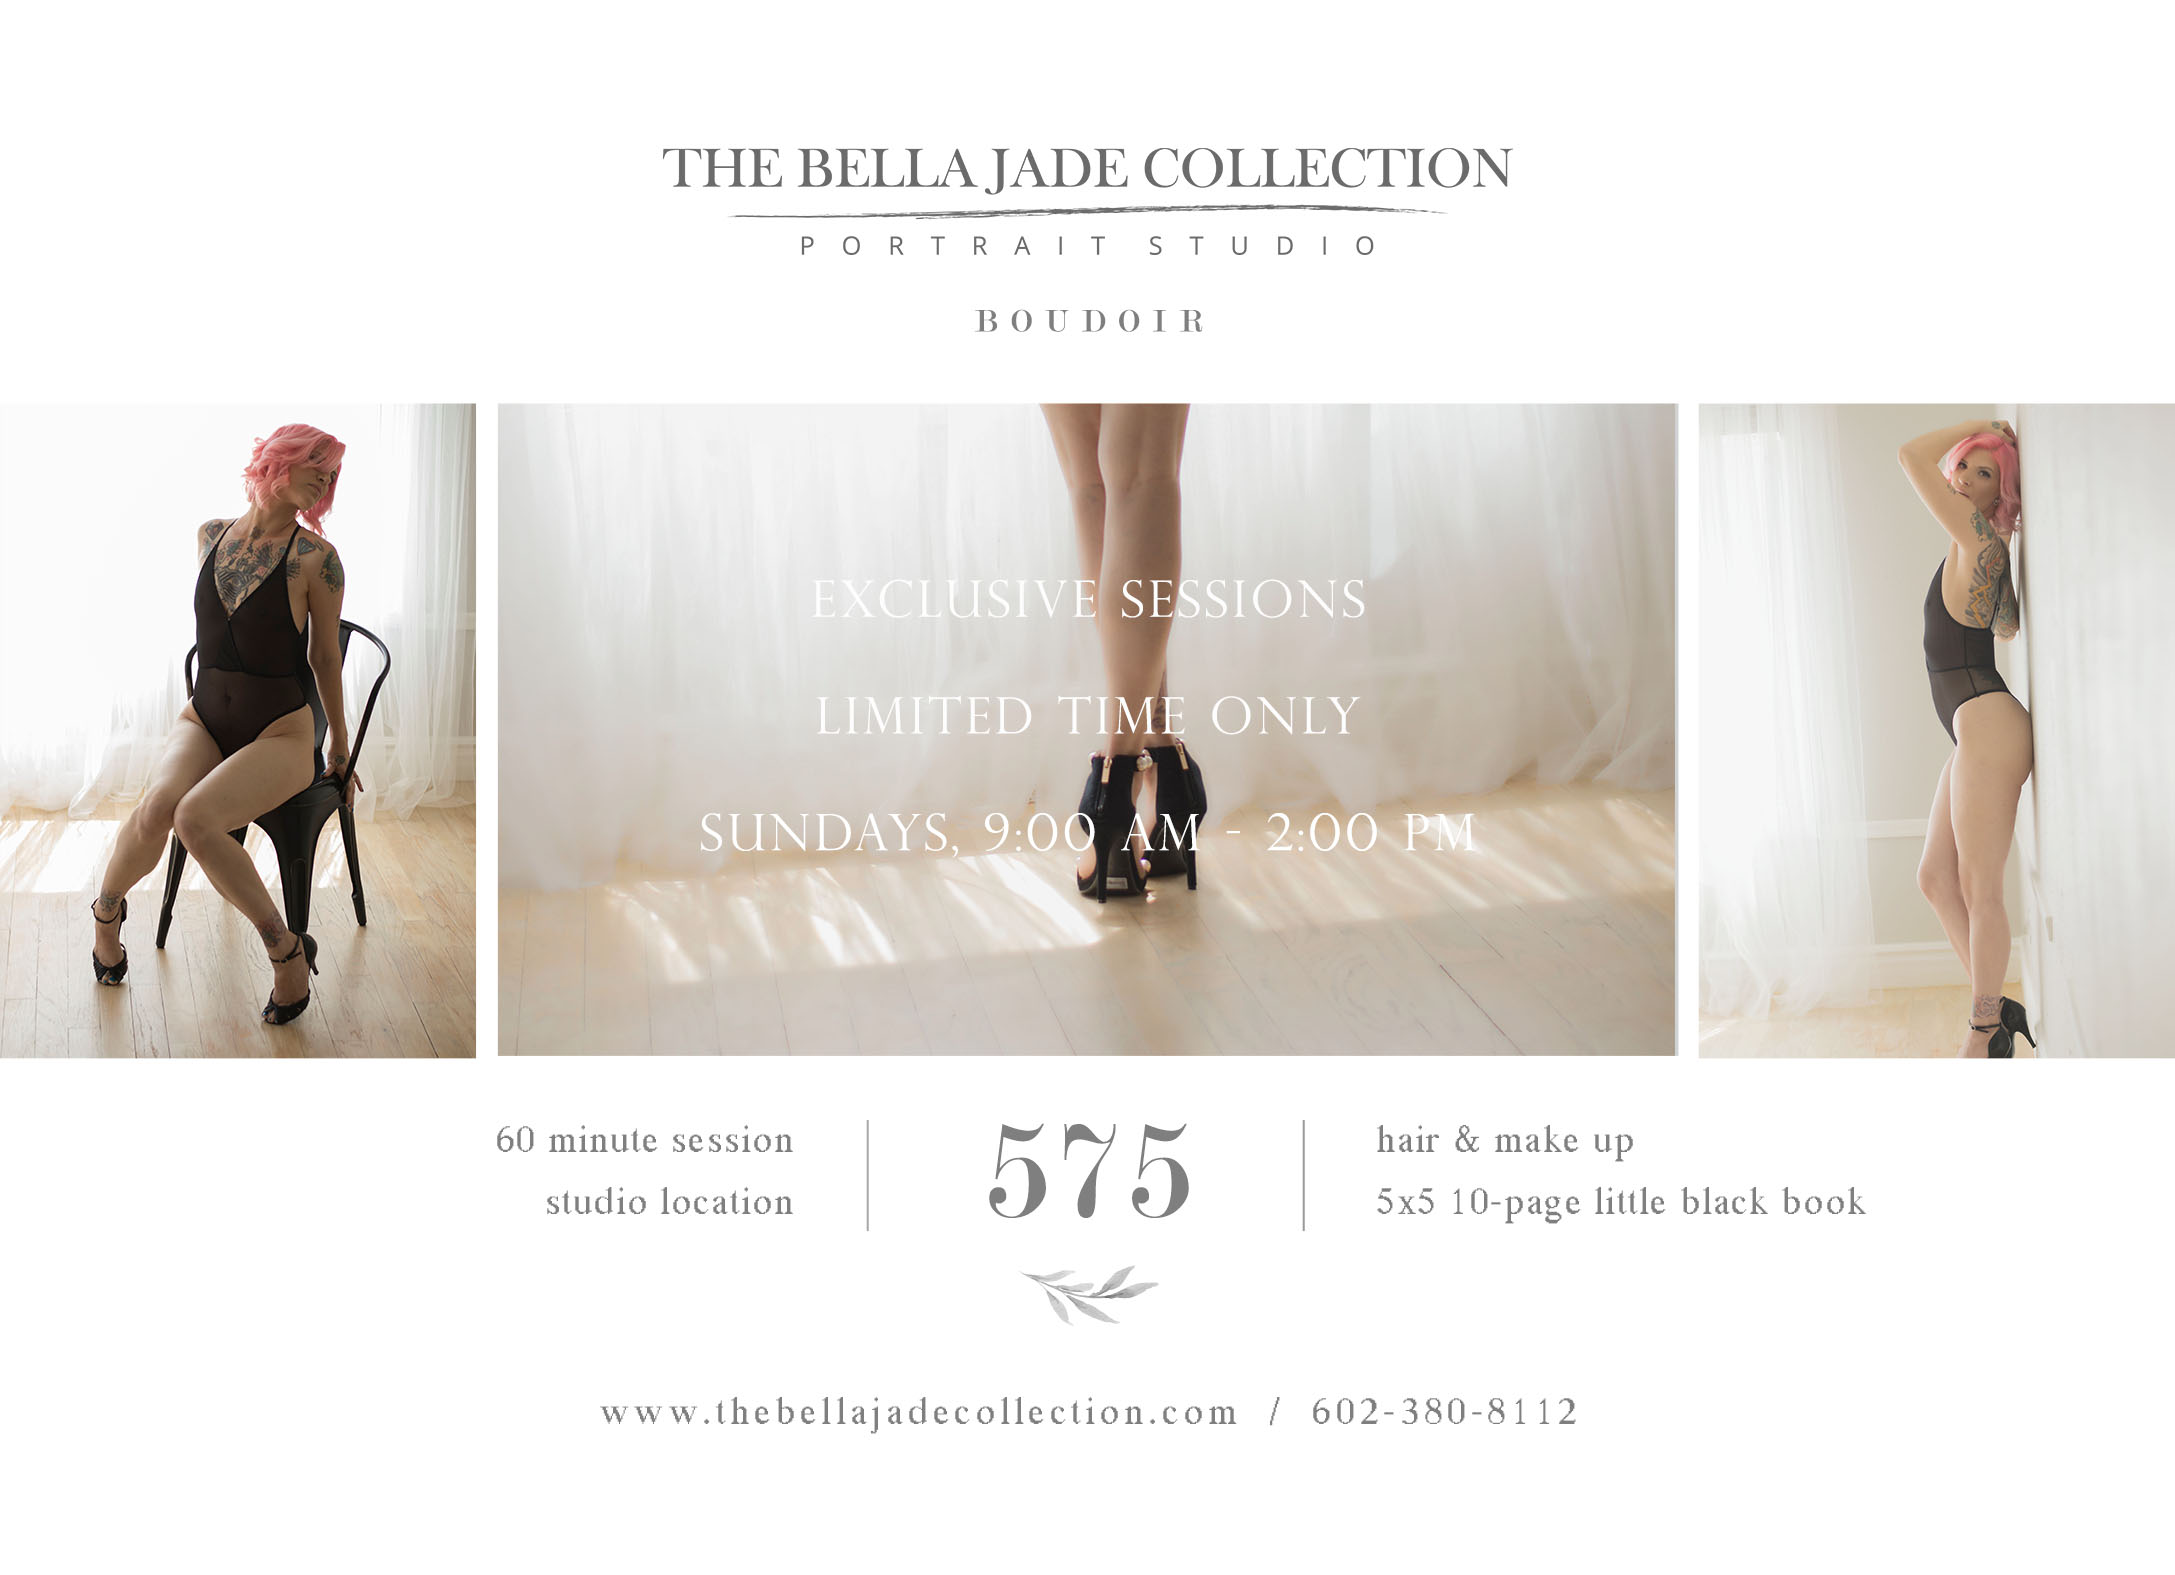 The Bella Jade Collection is a full service photography studio located in Gilbert with top rated Phoenix Boudoir Photographer that specializes in sexy photoshoots, tasteful lingerie boudoir photography serving the Phoenix, Chandler, Mesa, Gilbert area. Exclusive sessions include hair and make up, private studio location, and a little black book.